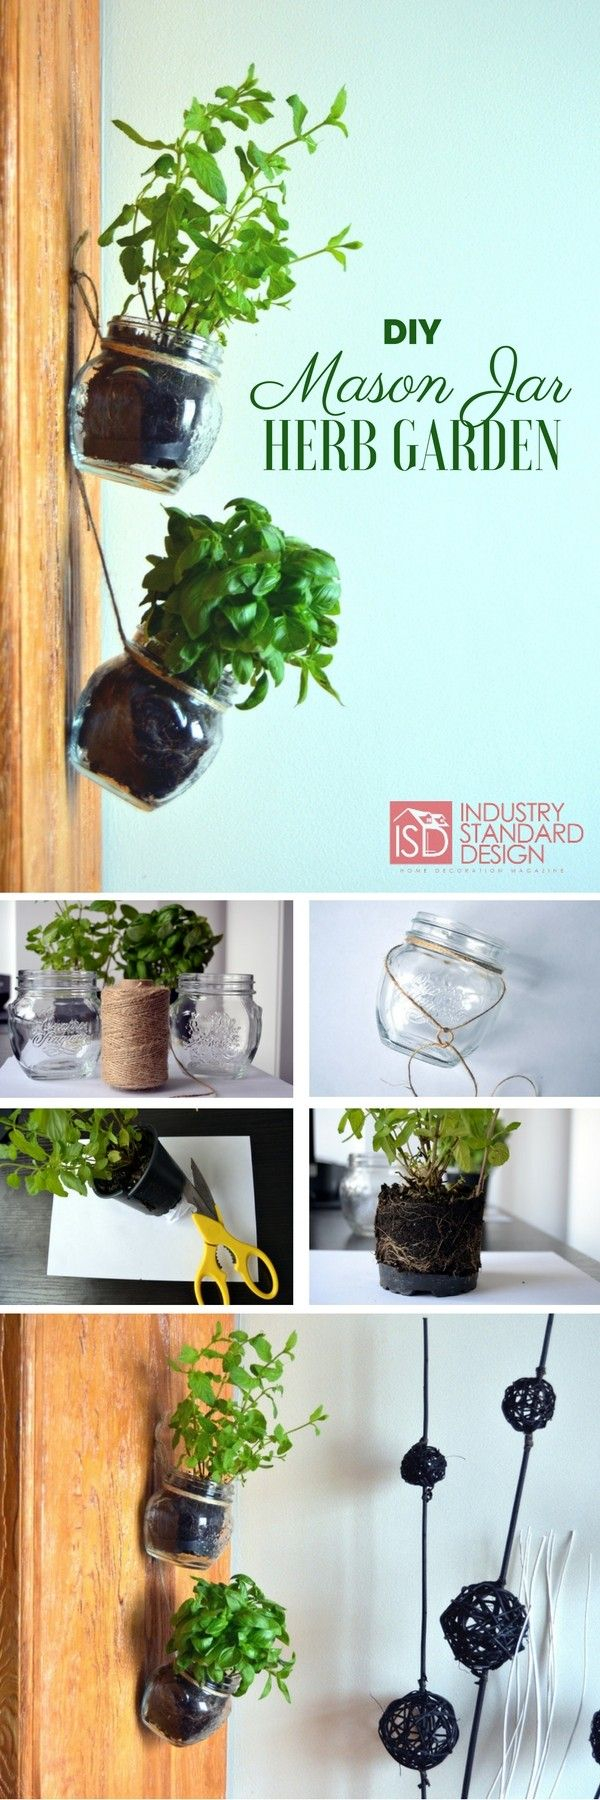 Check out how to make a very easy DIY mason jar hanging herb garden @istandarddesign